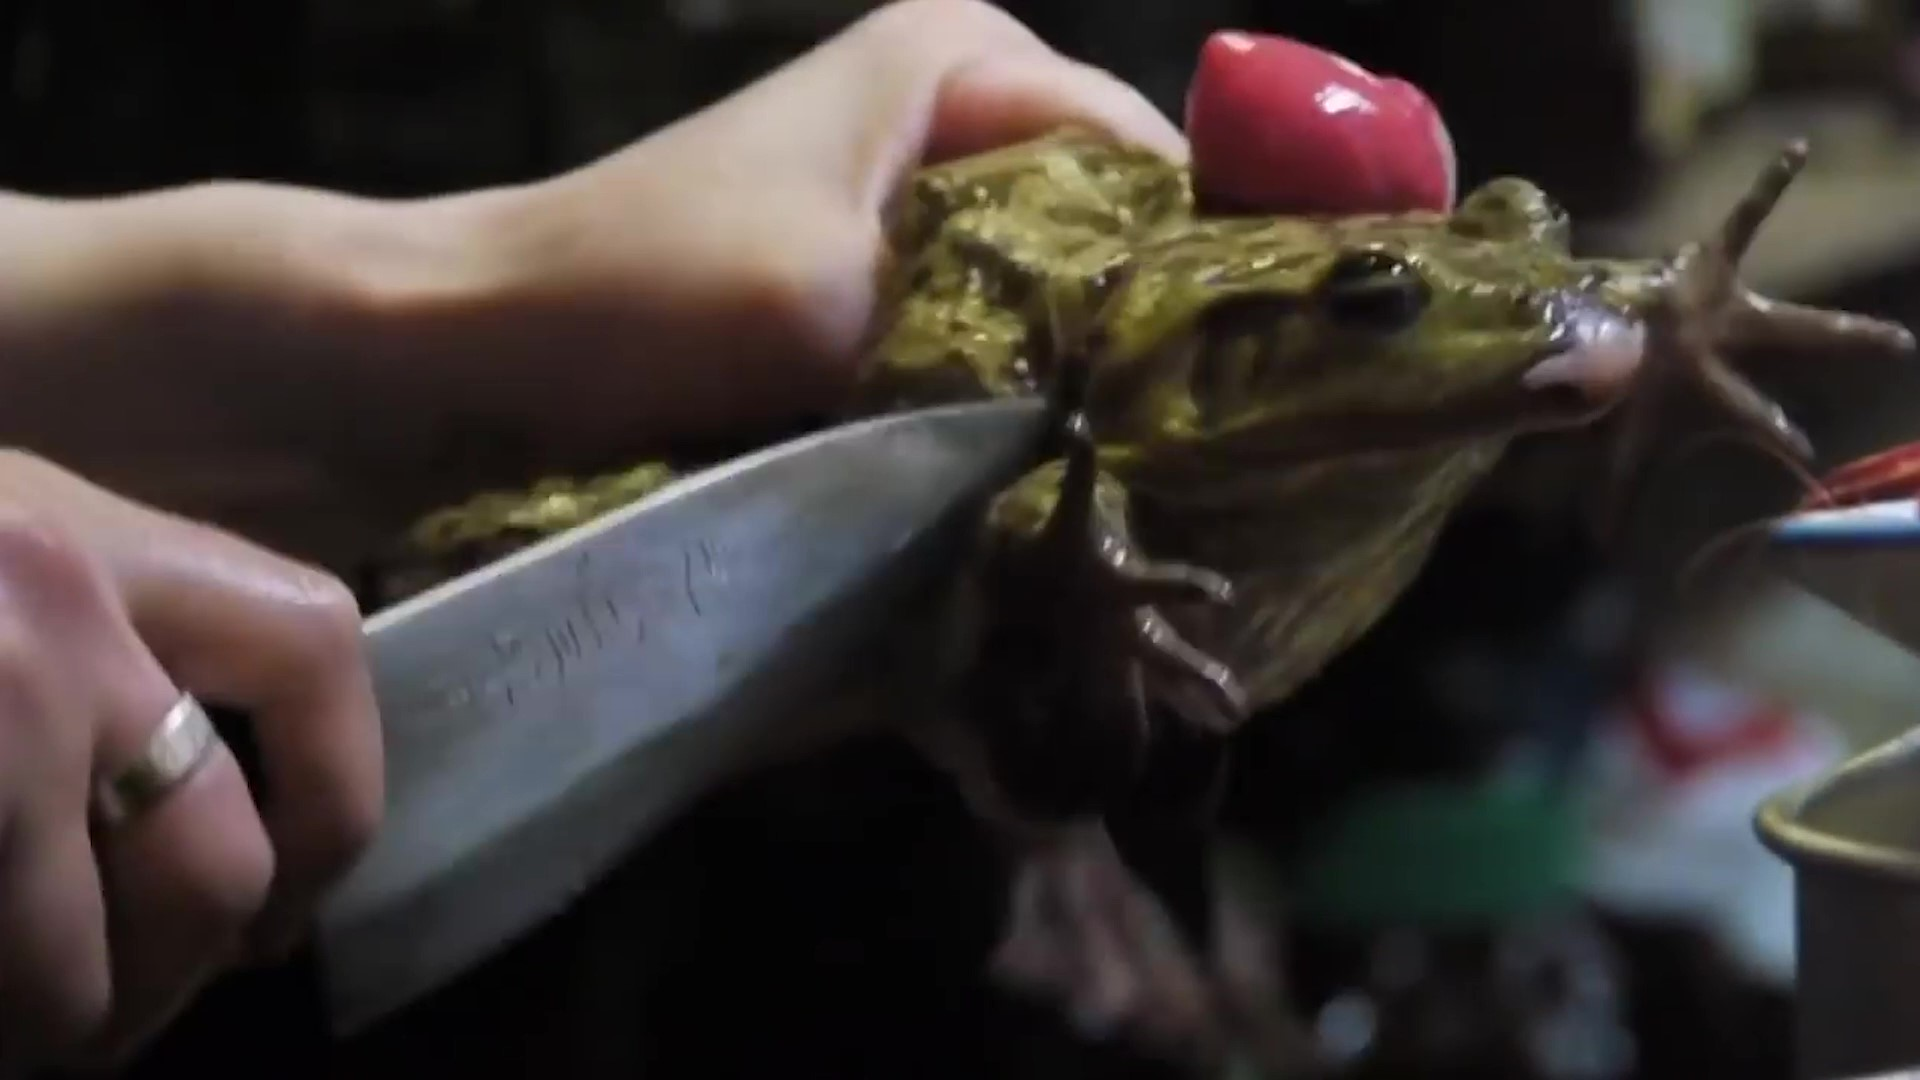 EATEN TO EXTINCTION! Millions of frogs are being tortured, maimed and killed - for the dinner table! 2